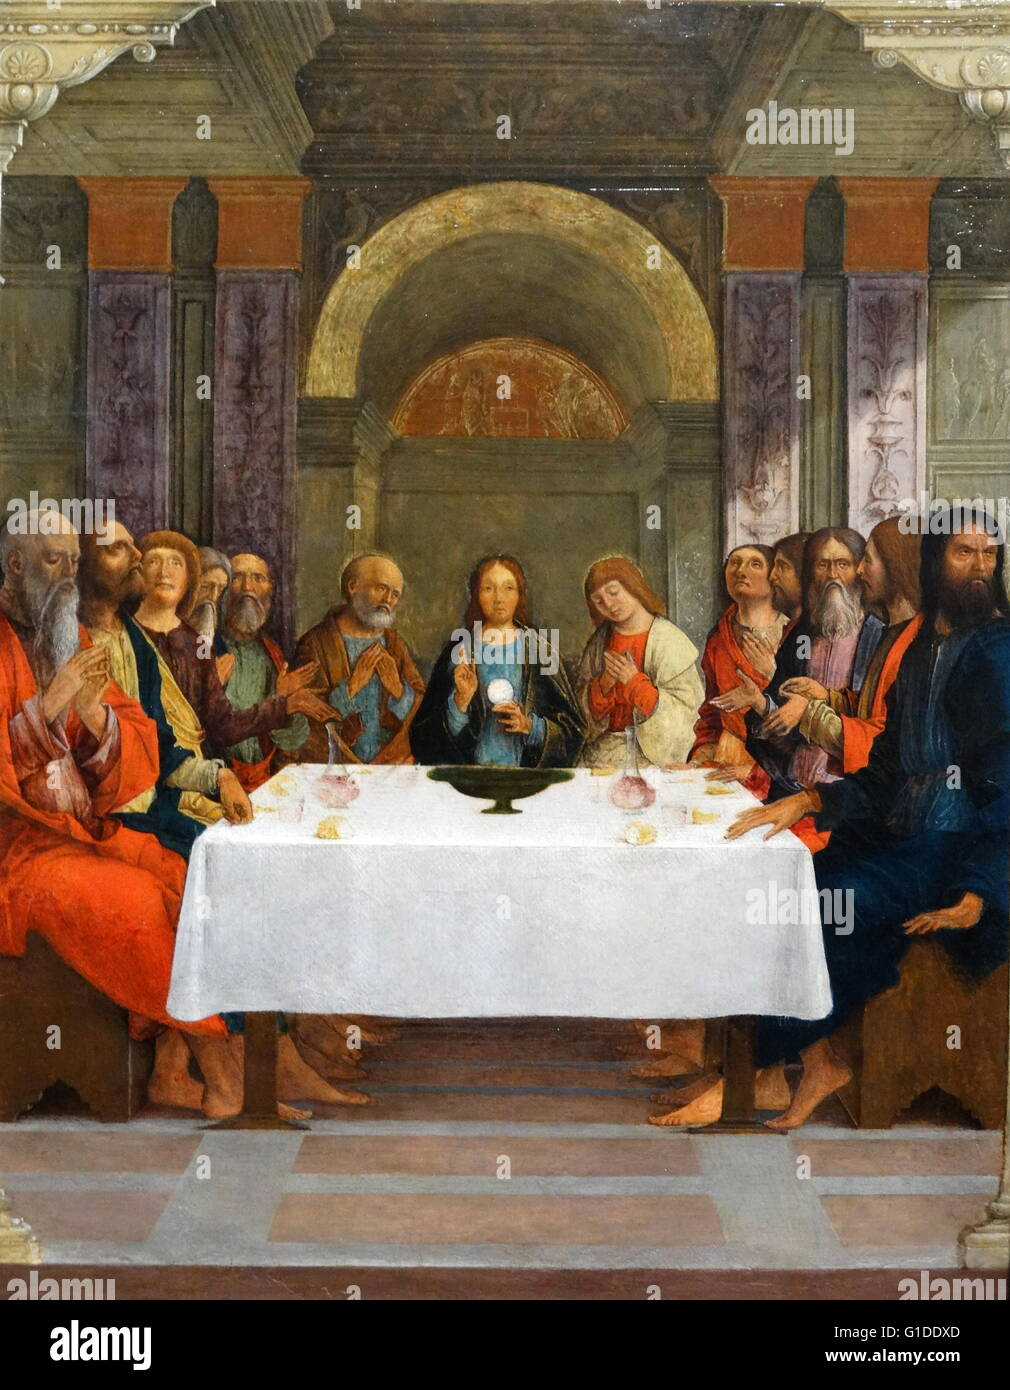 Painting titled 'The Institution of the Eucharist' by Ercole de' Roberti (1451-1496) an Italian artist - Stock Image